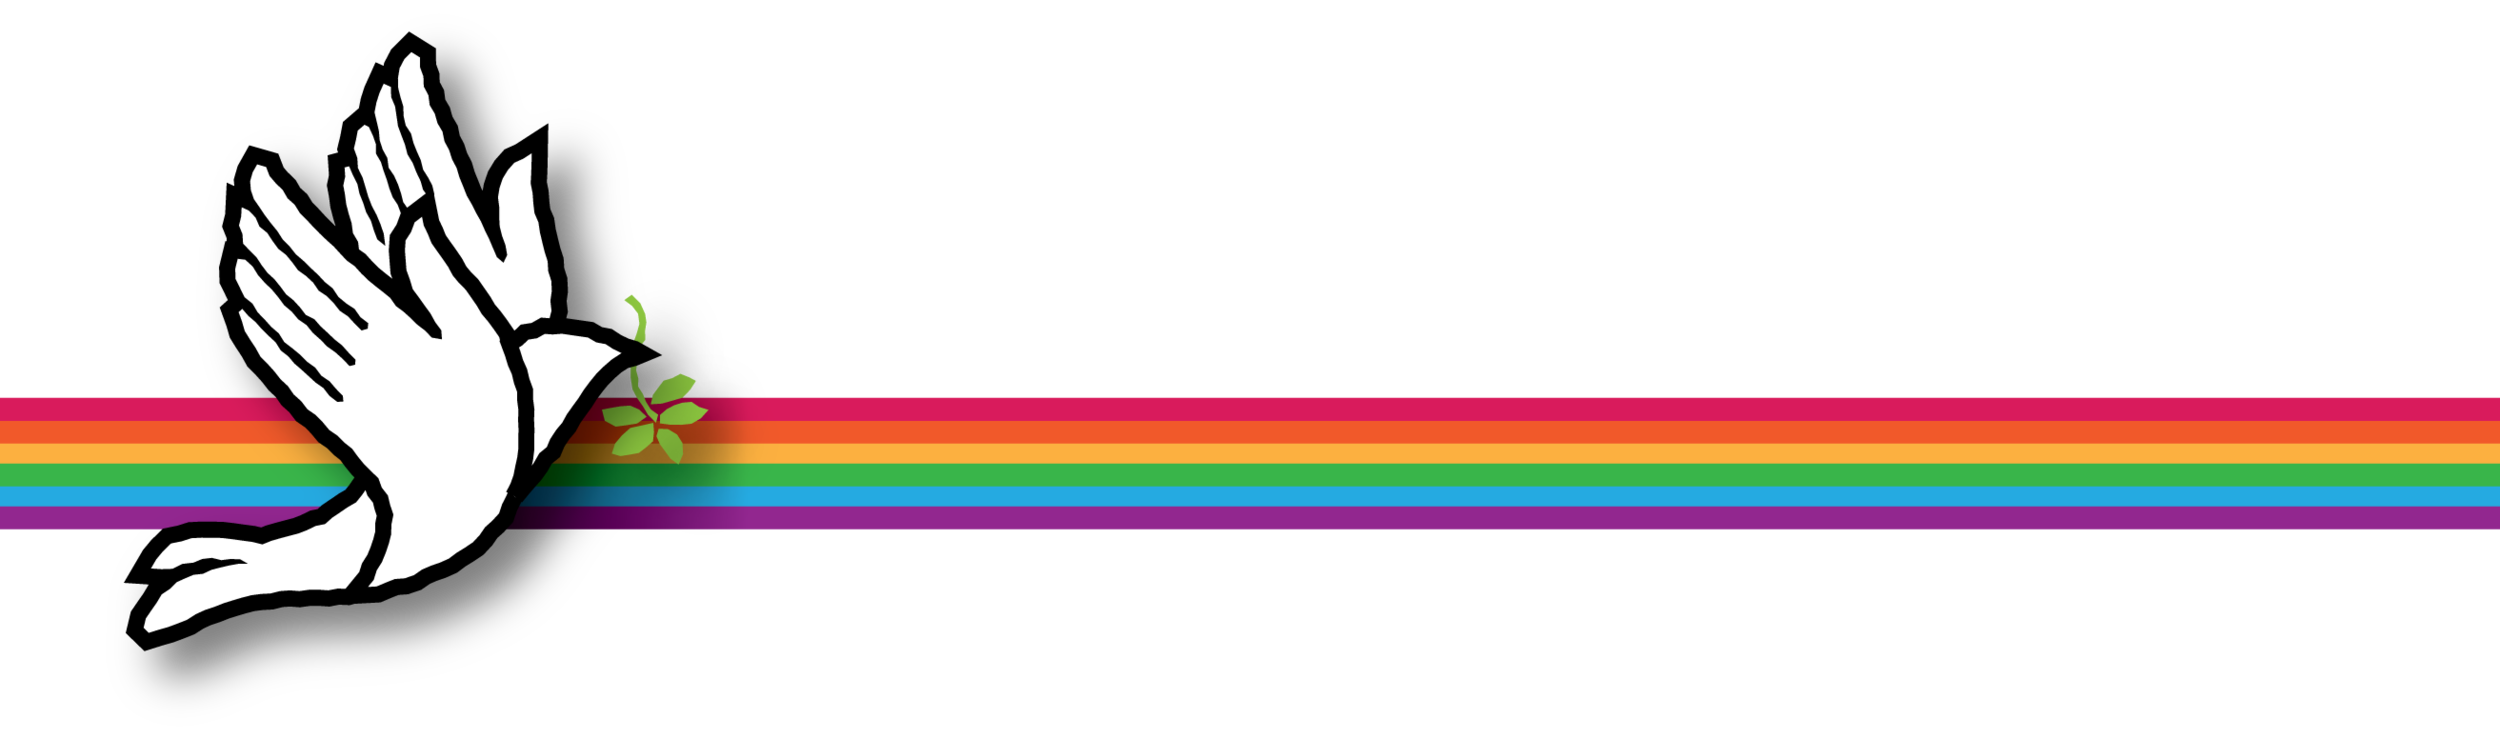 Parkside_Logo-Rainbow.png